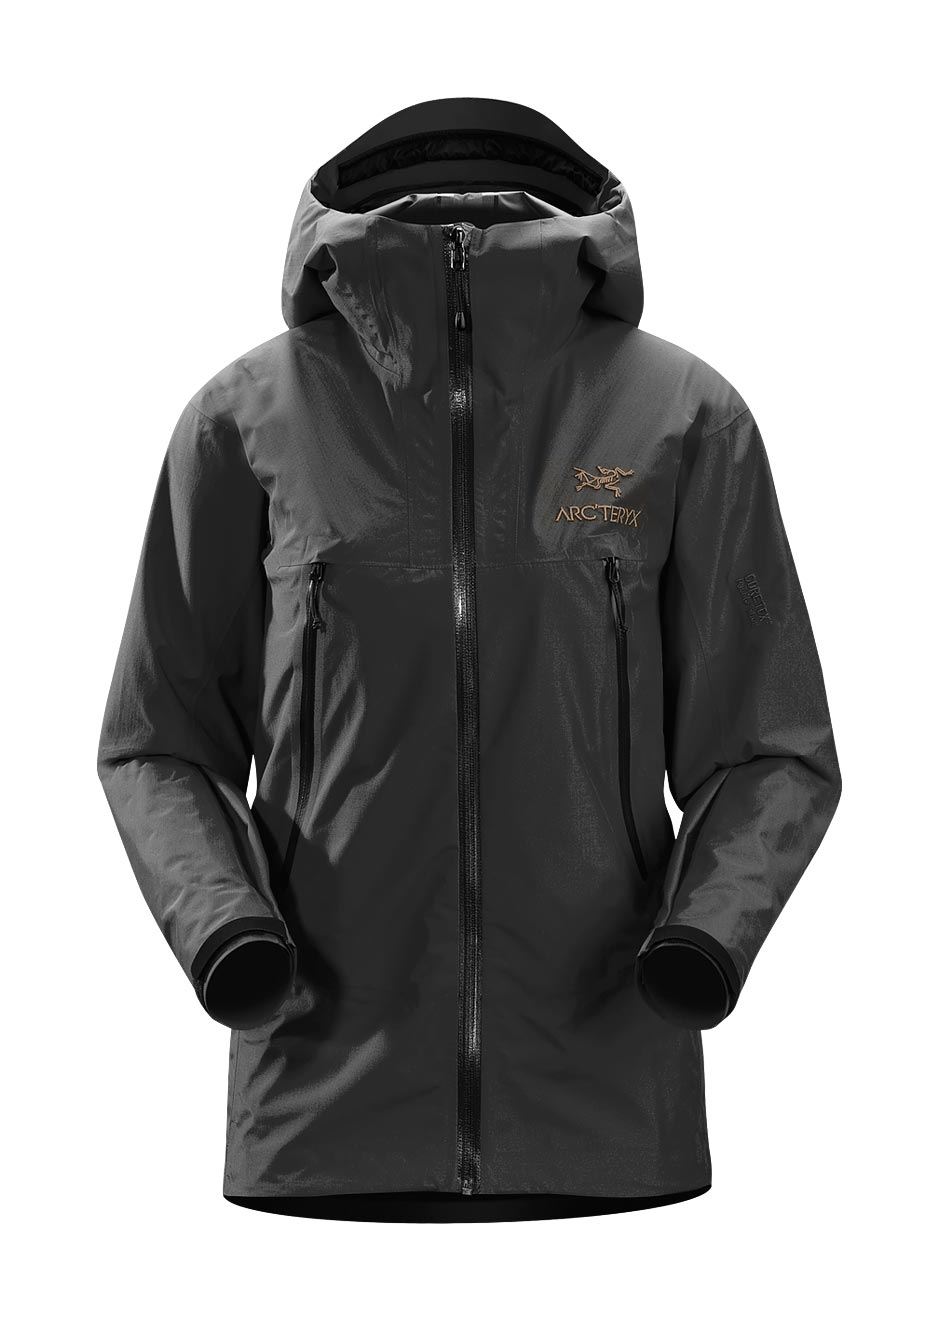 Arcteryx Black Alpha SL Jacket